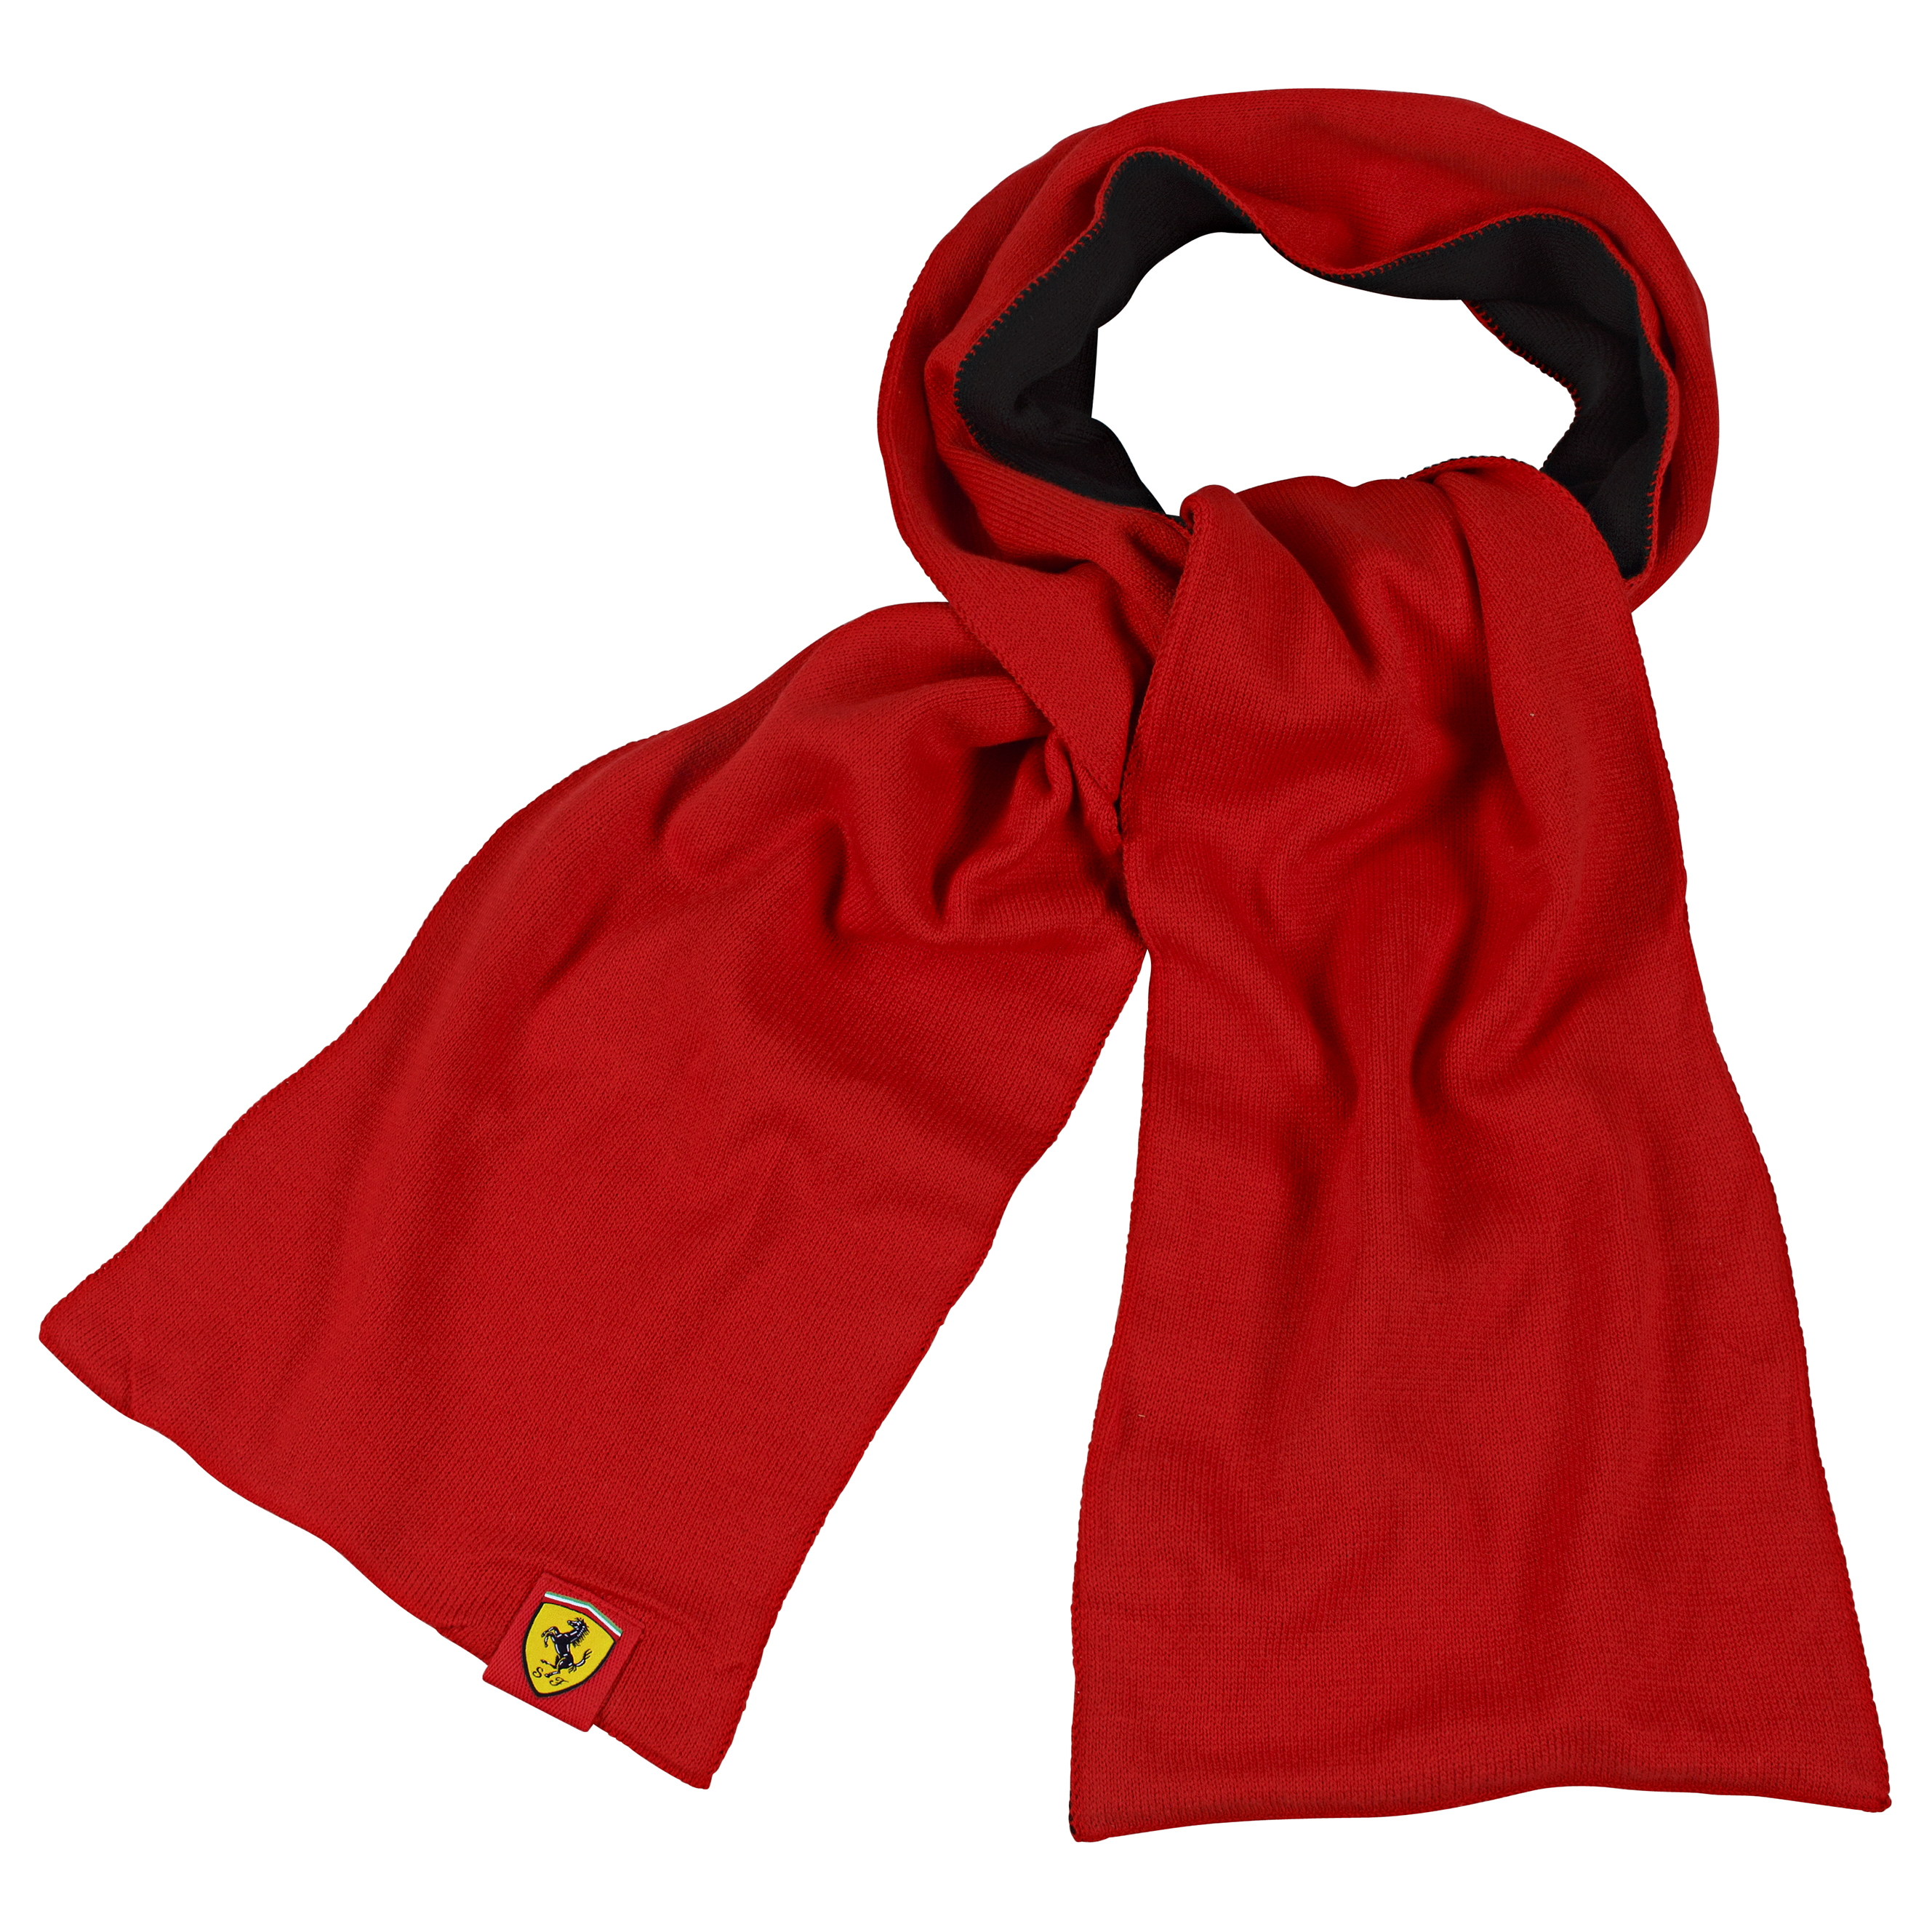 Scuderia Ferrari Knitted Scarf - Red/Black